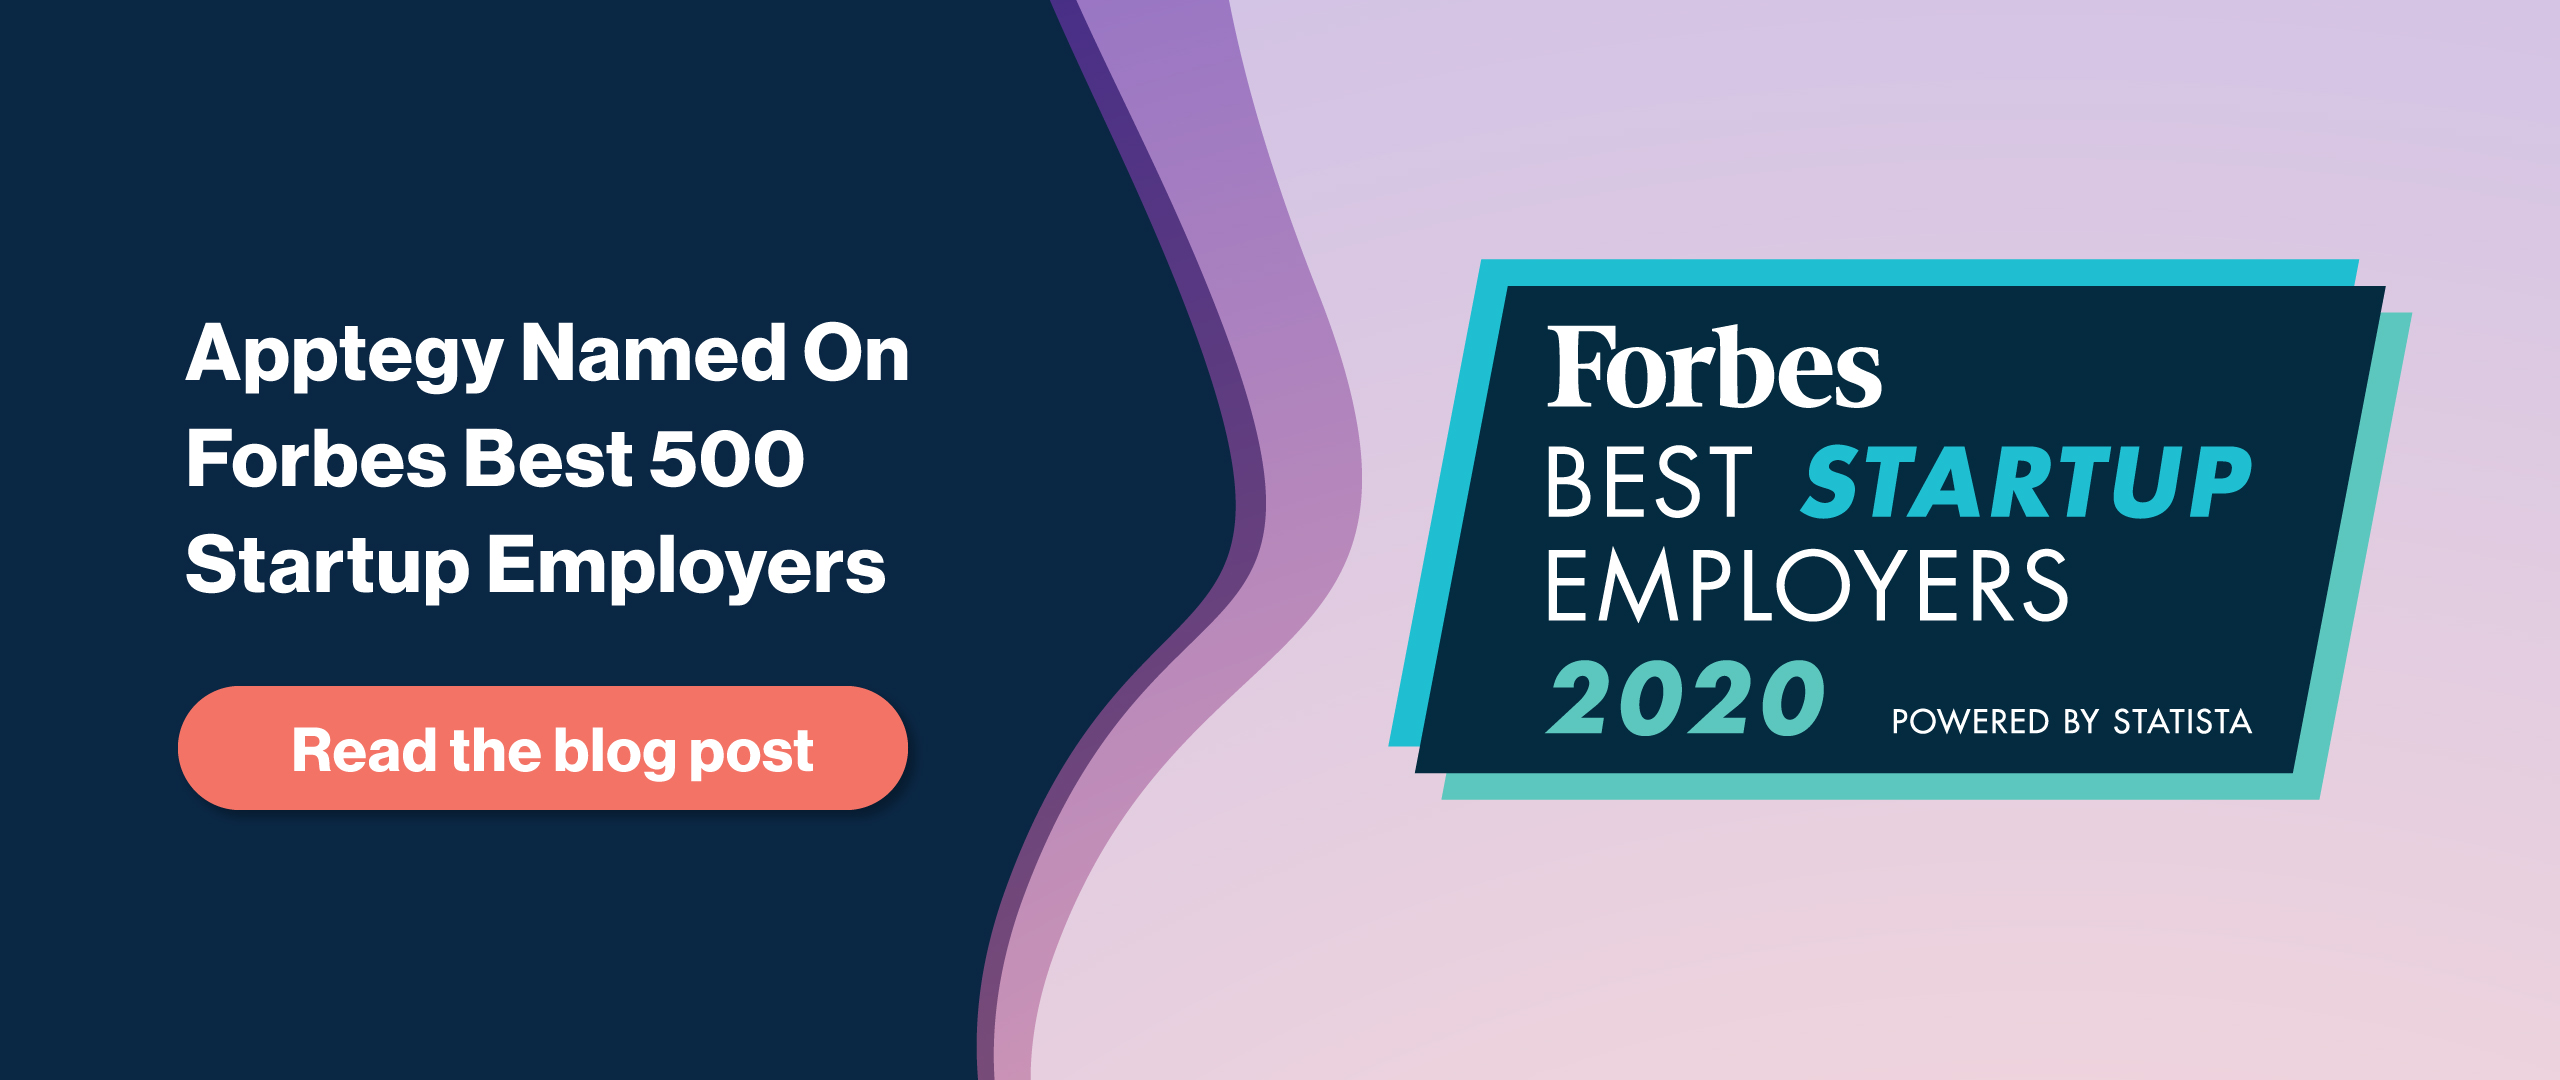 Forbes Best Startup Employers of 2020, Click to Read More